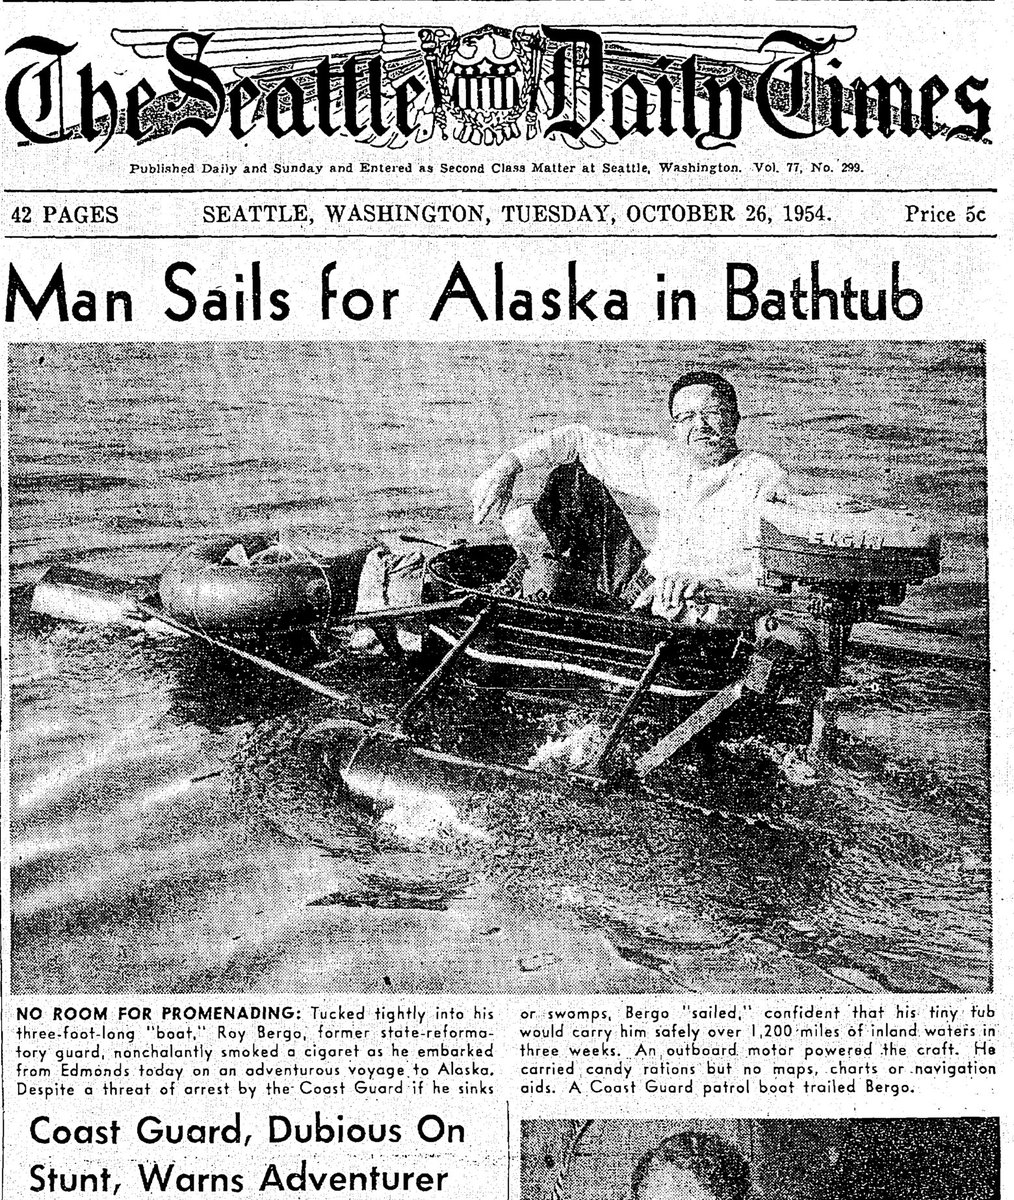 OnThisDay 62 years ago, a man set sail in bathtub from Edmonds to Alaska